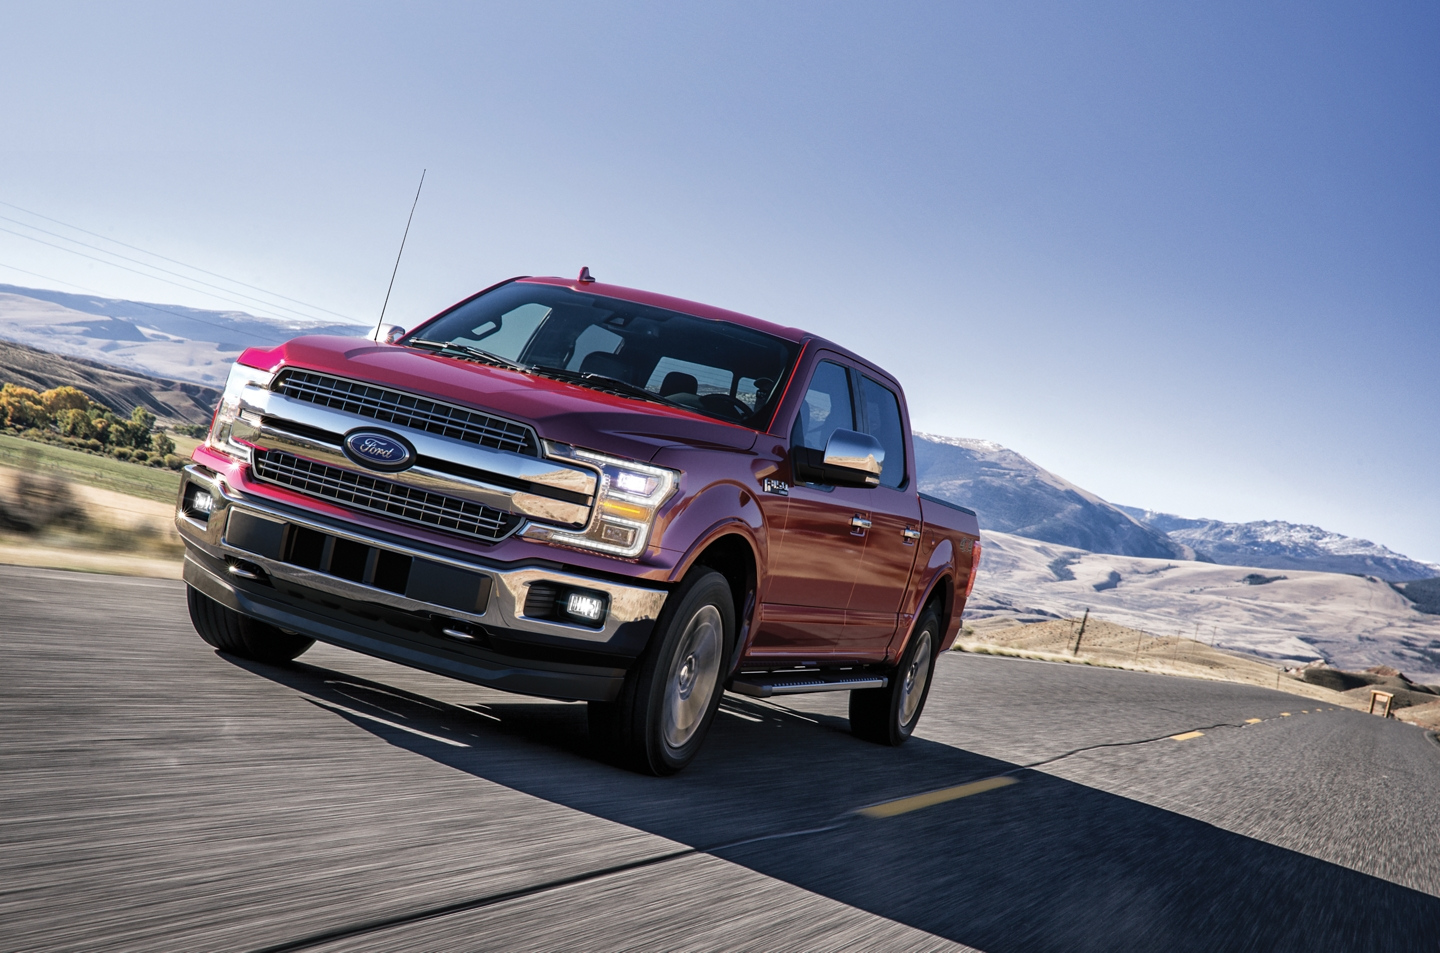 Ford Sold More Than 100 F-150 Pickup Trucks An Hour - Autoversed